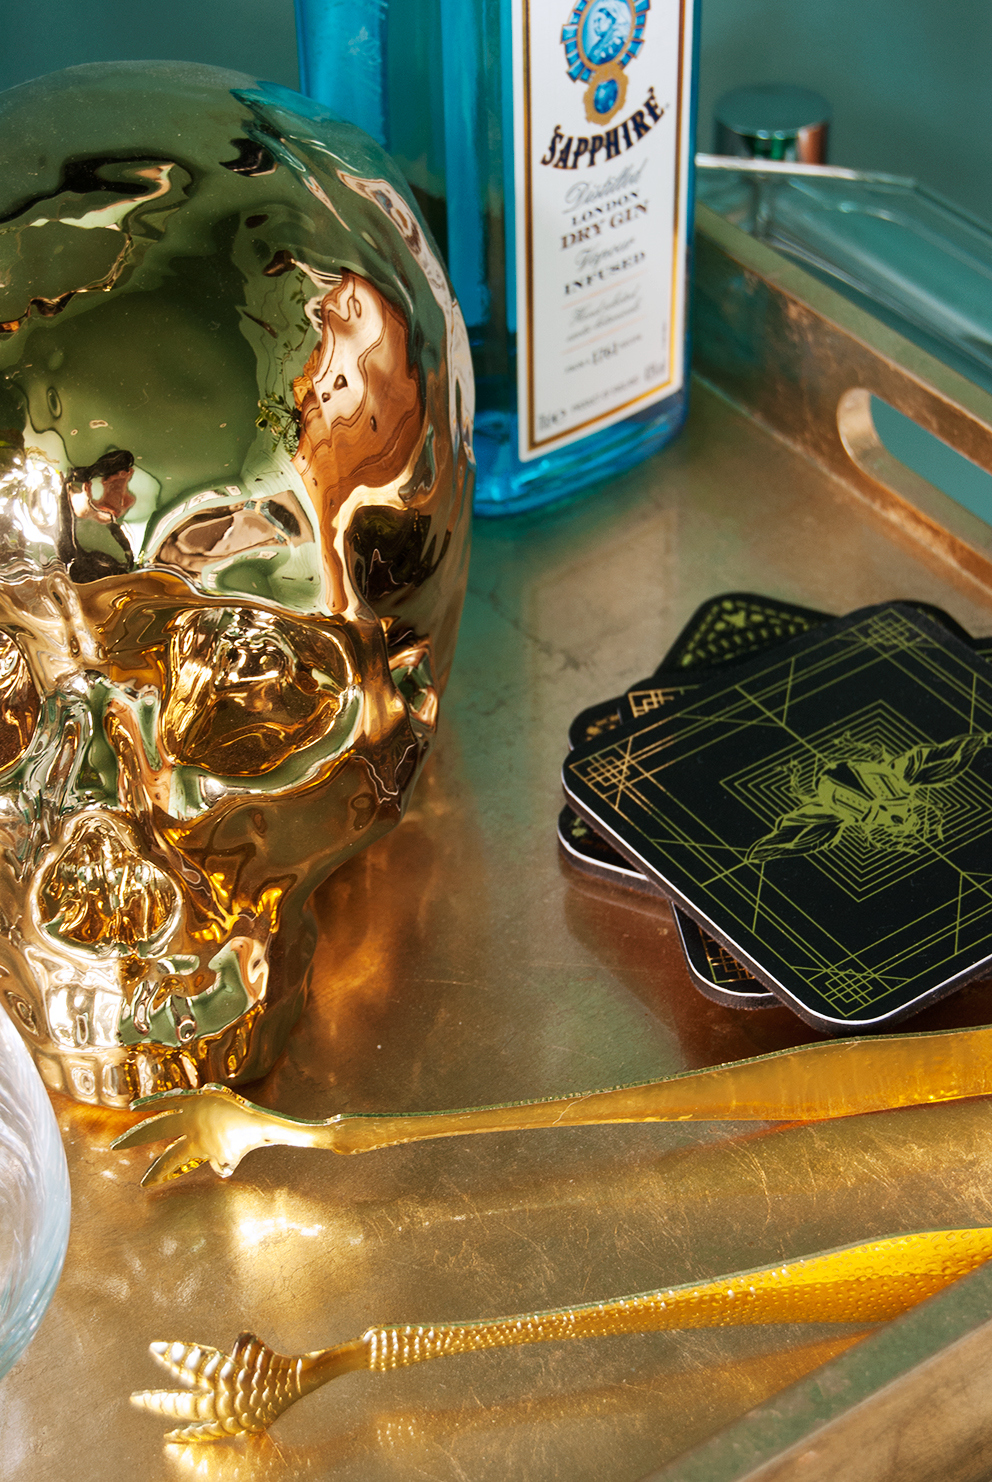 Family TV Room Reveal - French For Pineapple Blog - Gold Skull, Gin Bottle and Coasters